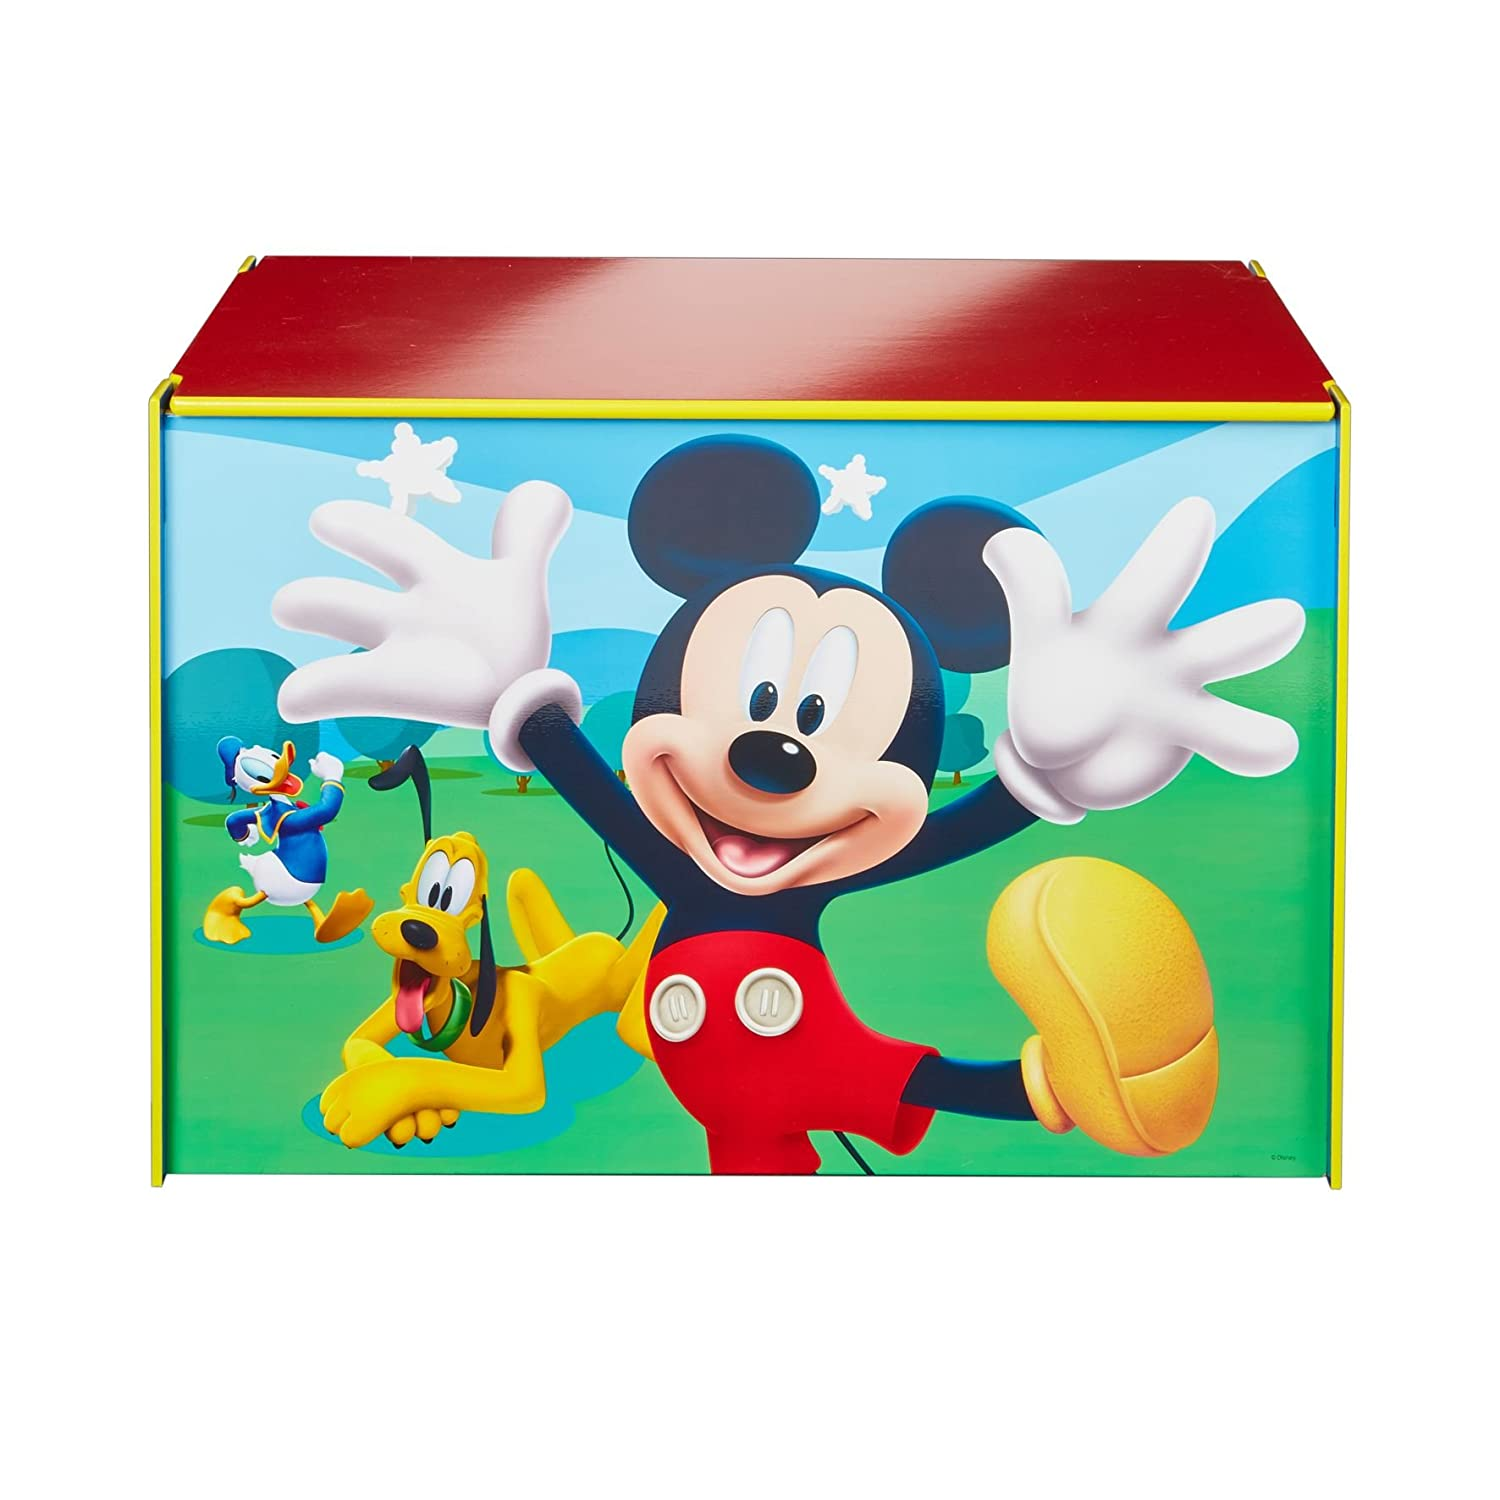 Disney Mickey Mouse Kids Toy Box - Childrens Bedroom Storage Chest with Bench Lid by HelloHome Worlds Apart 474MKS